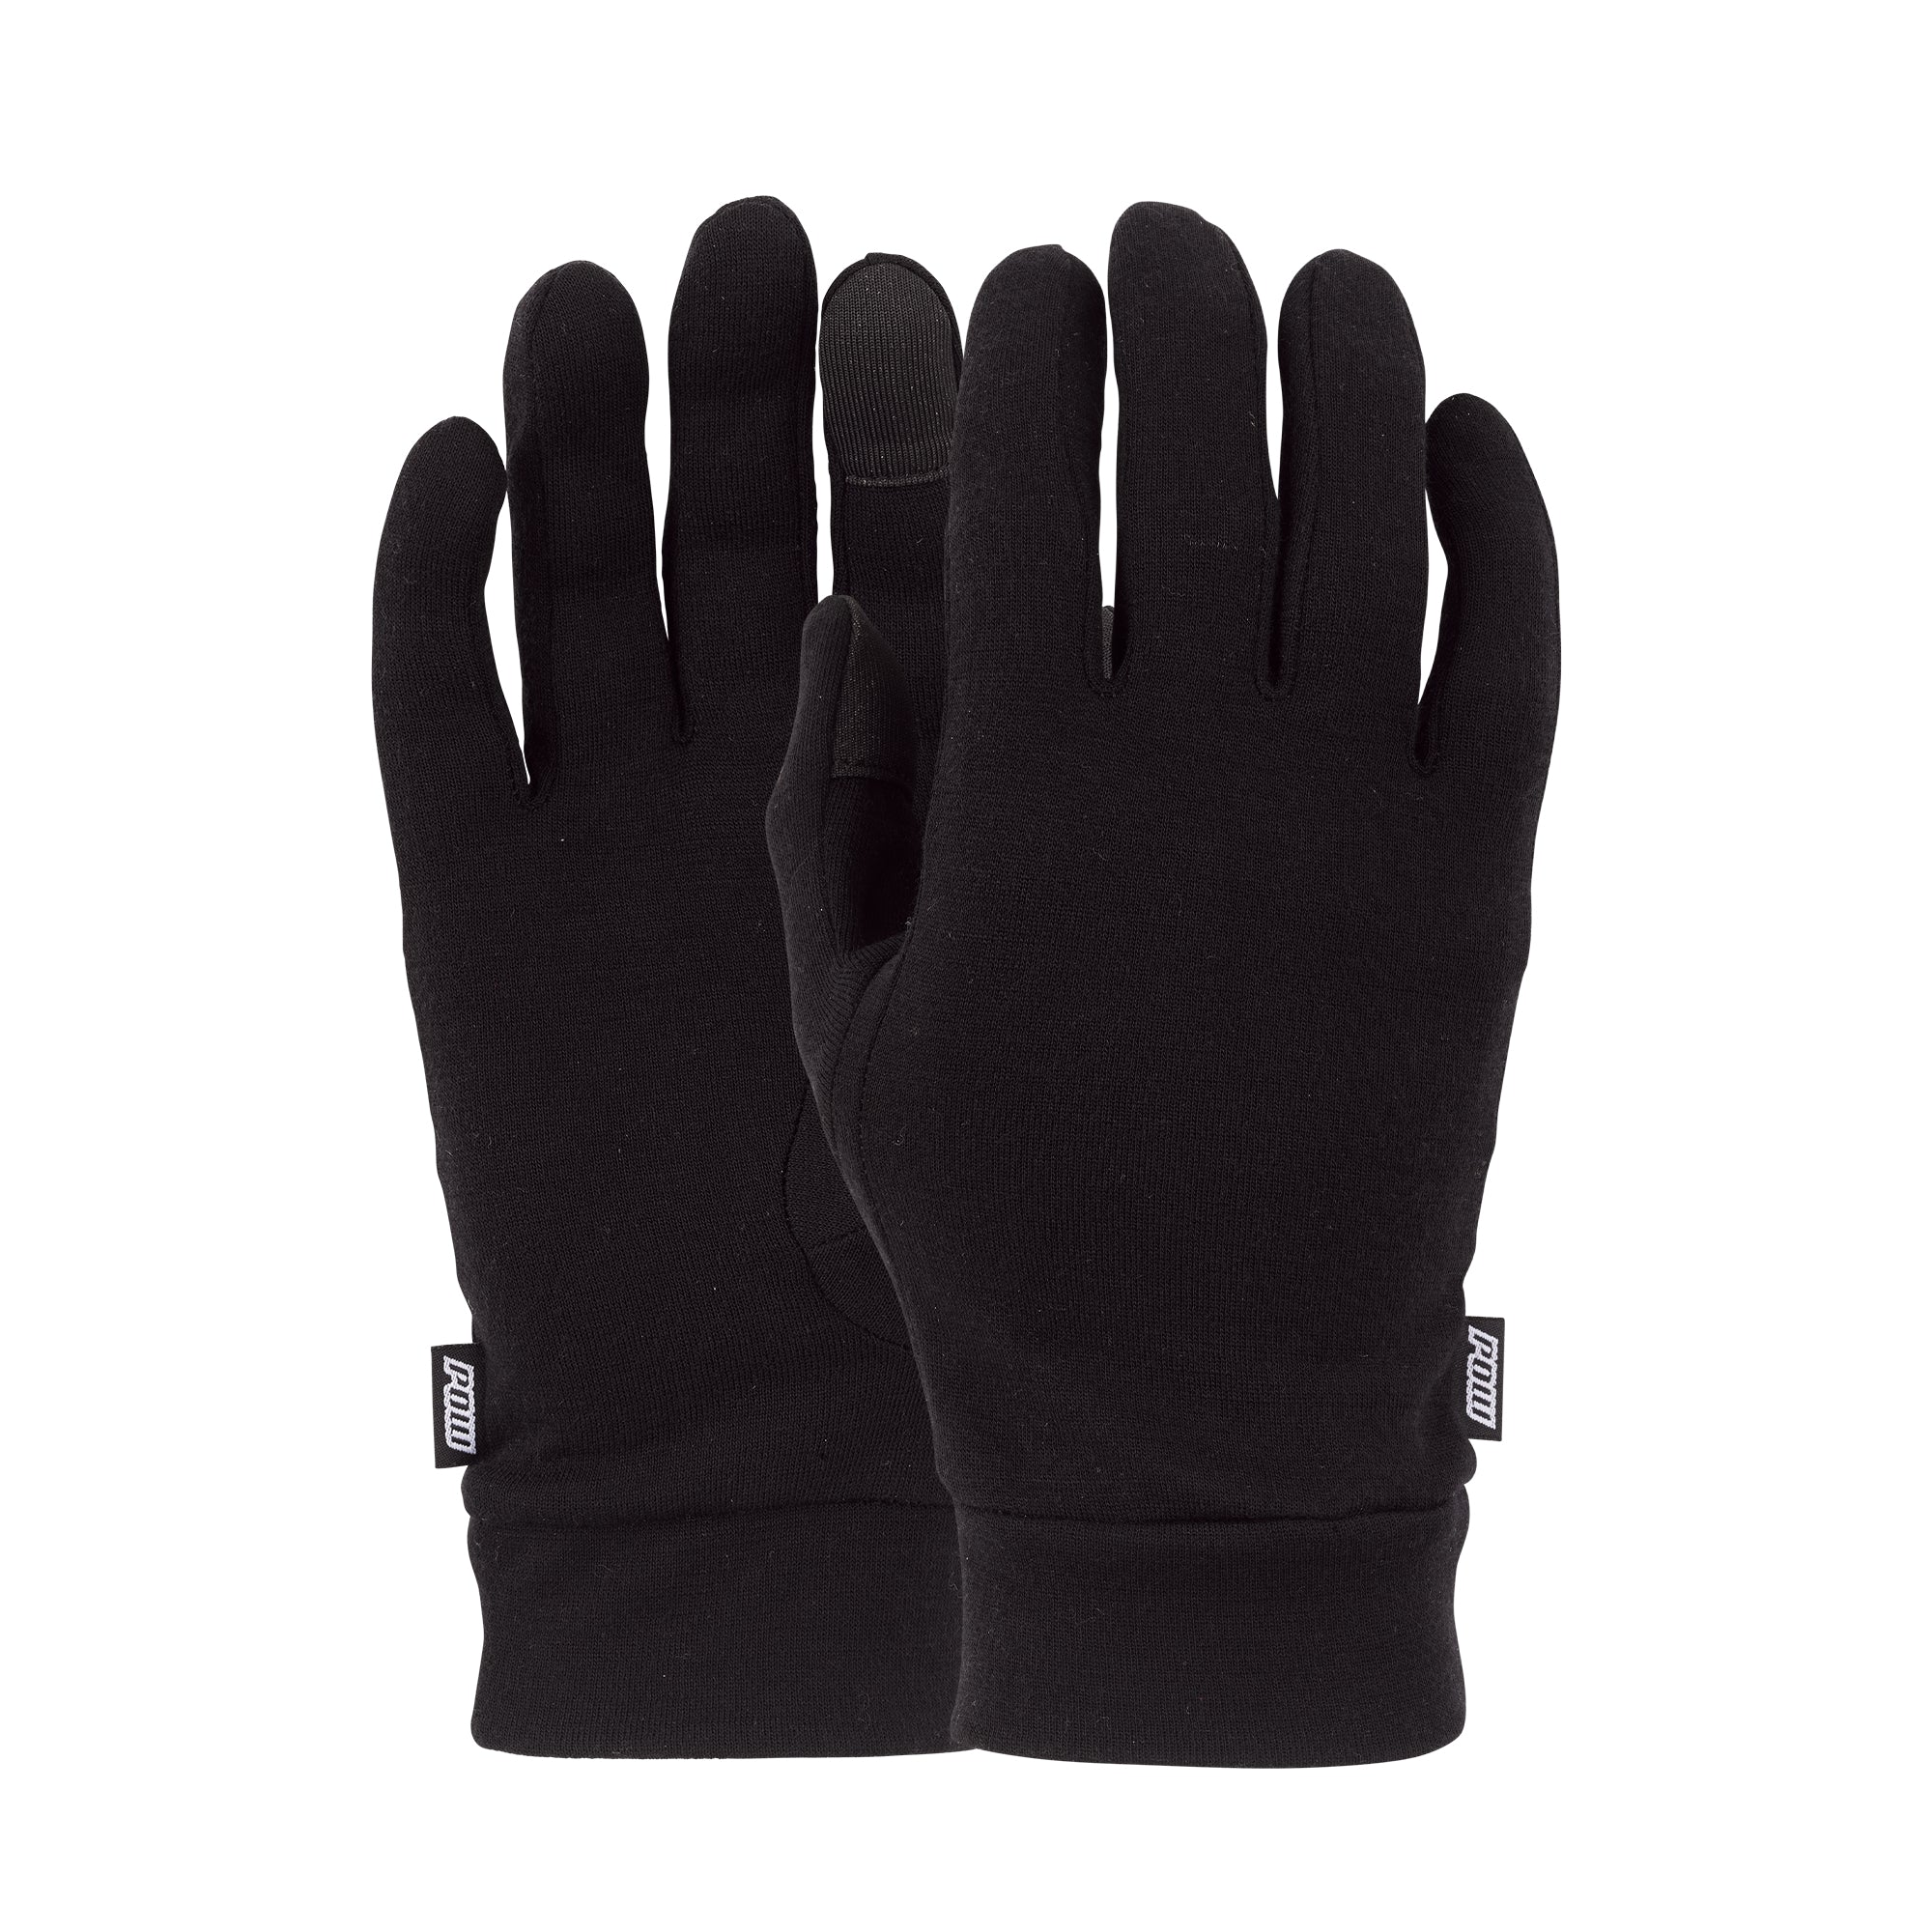 POW Gloves - Crescent GTX Long Cuff Women's Ski / Snowboard Glove's